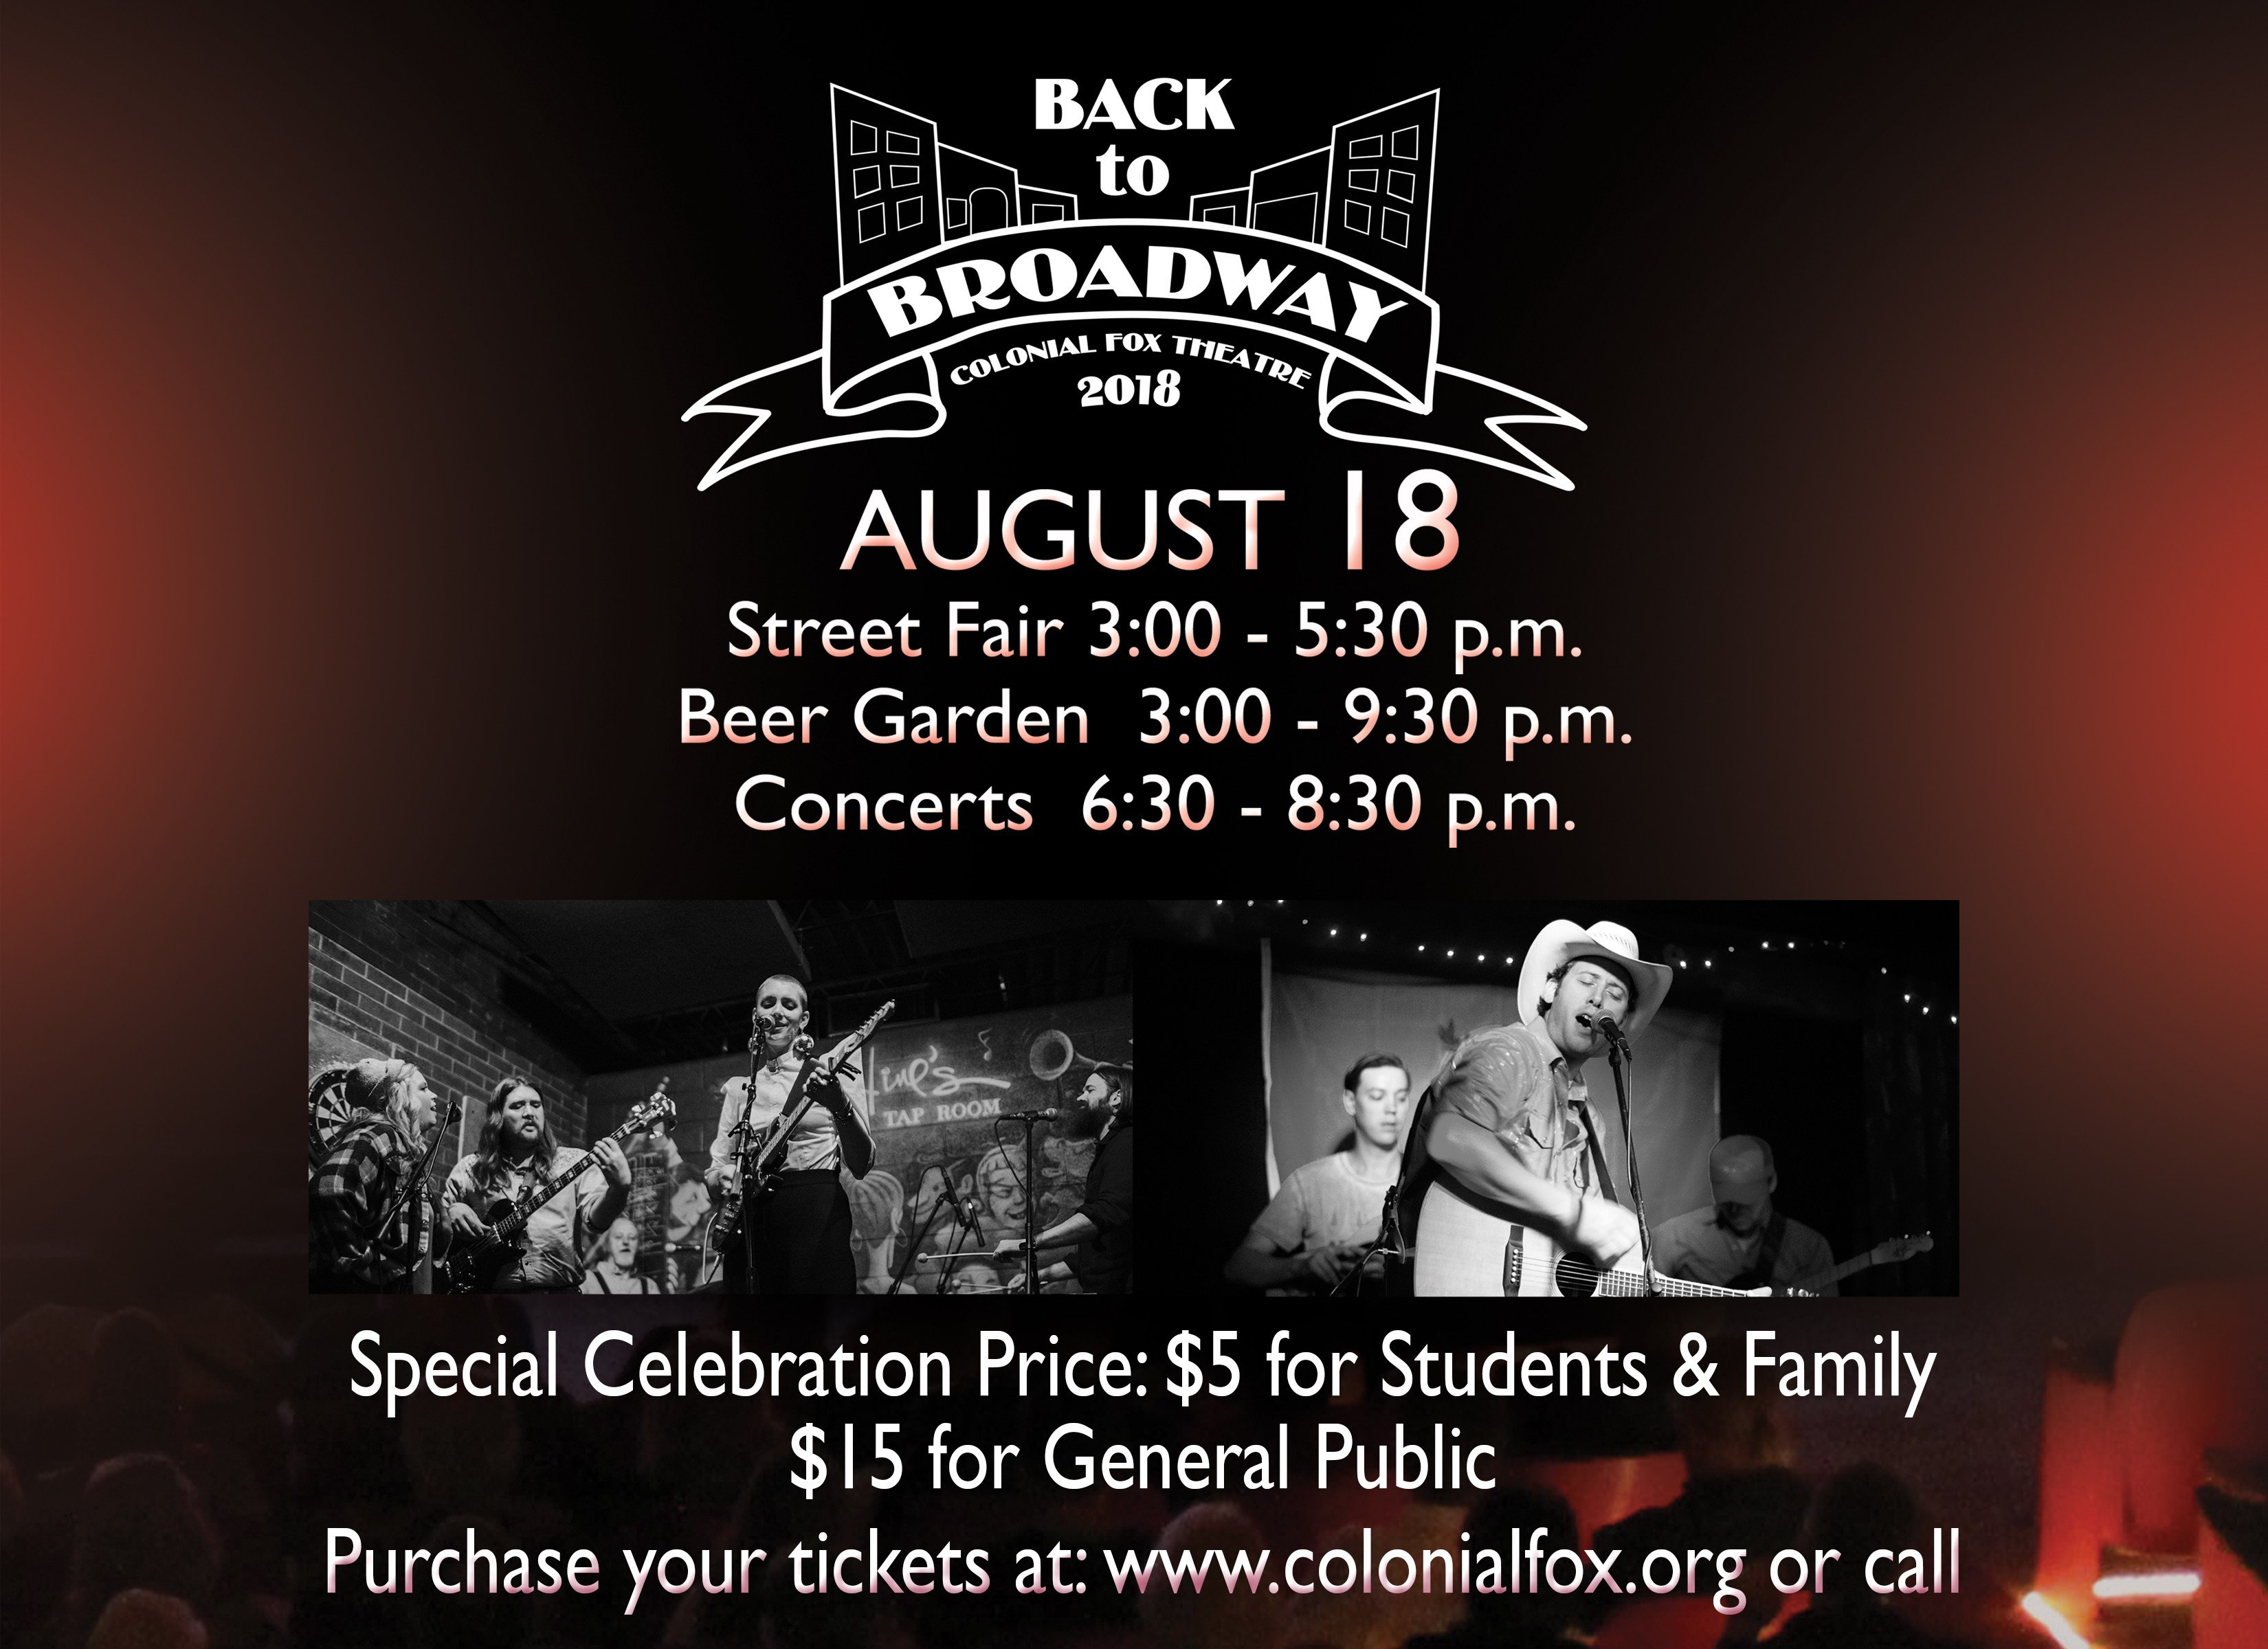 Back to Broadway Celebration - August 18 - FOX 14 TV Joplin and ...